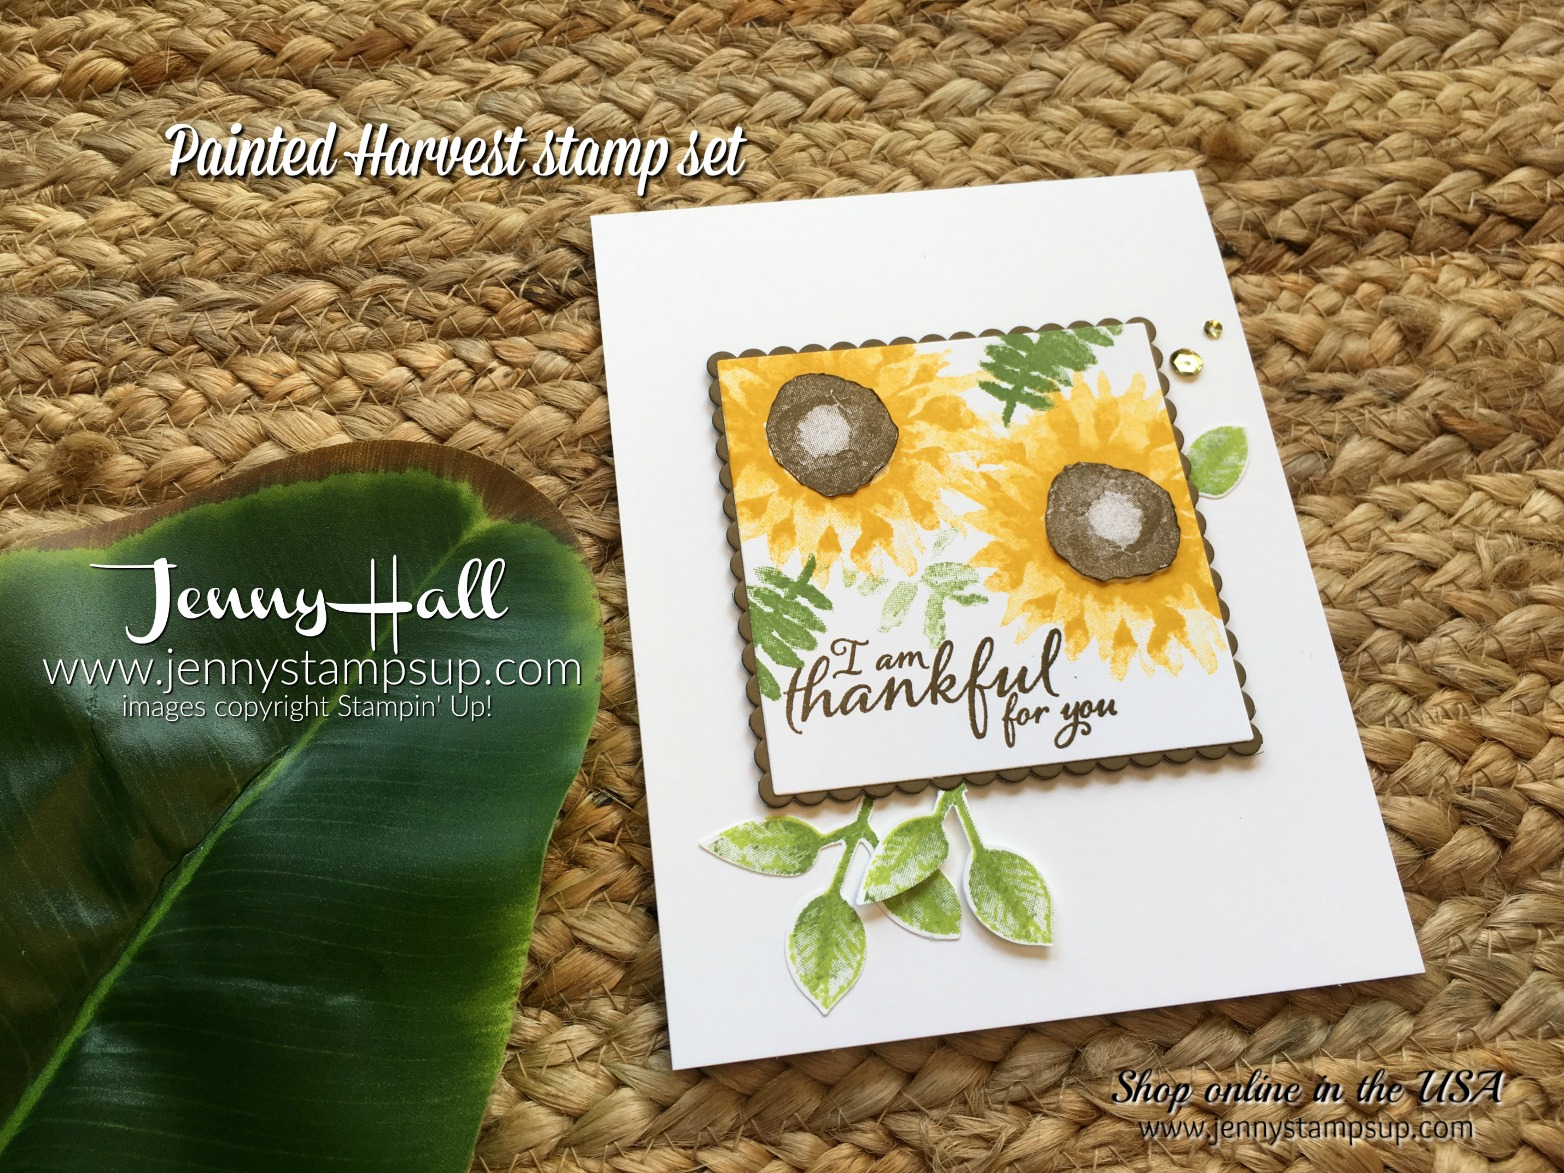 Painted Harvest Bundle card with video by Jenny Hall at www.jennyhalldesign.com for cardmaking, free video tutorials, papercraft gift giving, scrapbooking and more